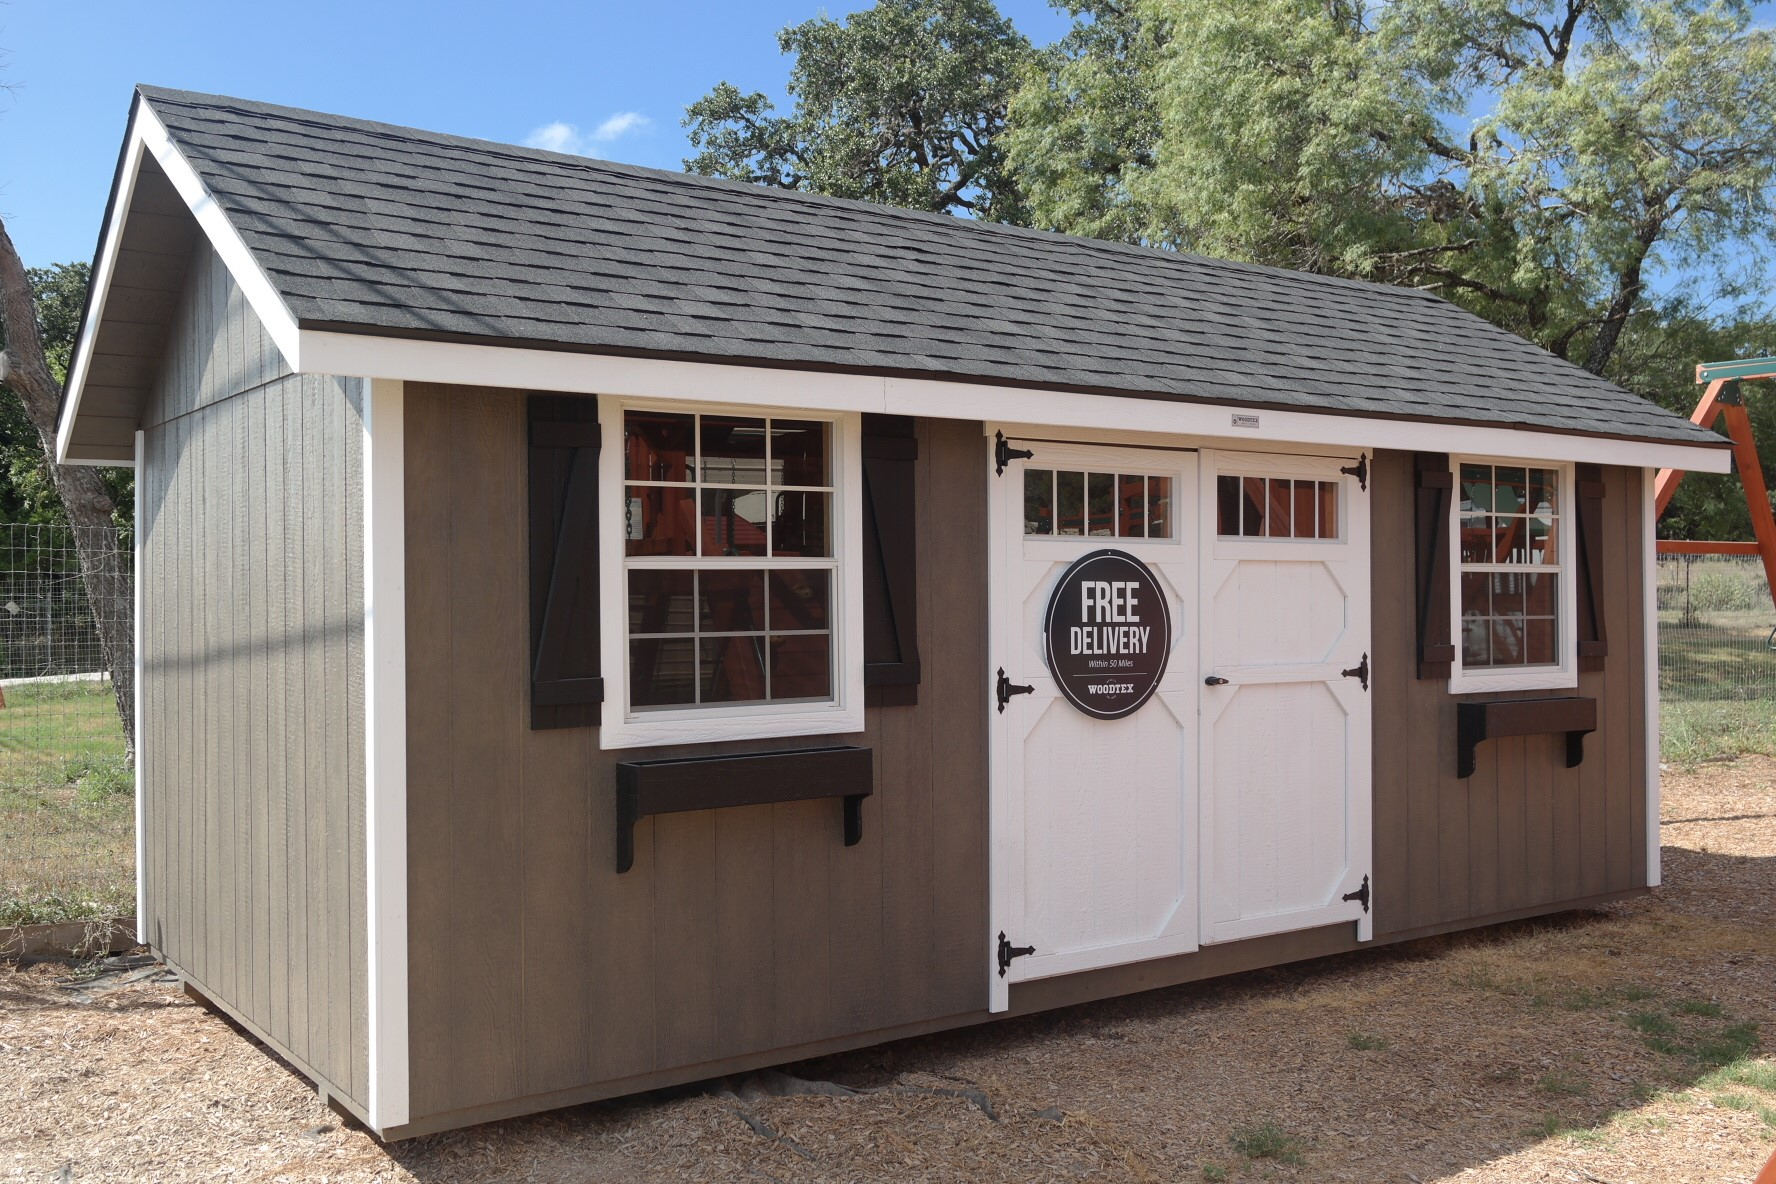 Garden Sheds San Antonio get a free in-home estimate on sheds & more! - backyard adventures